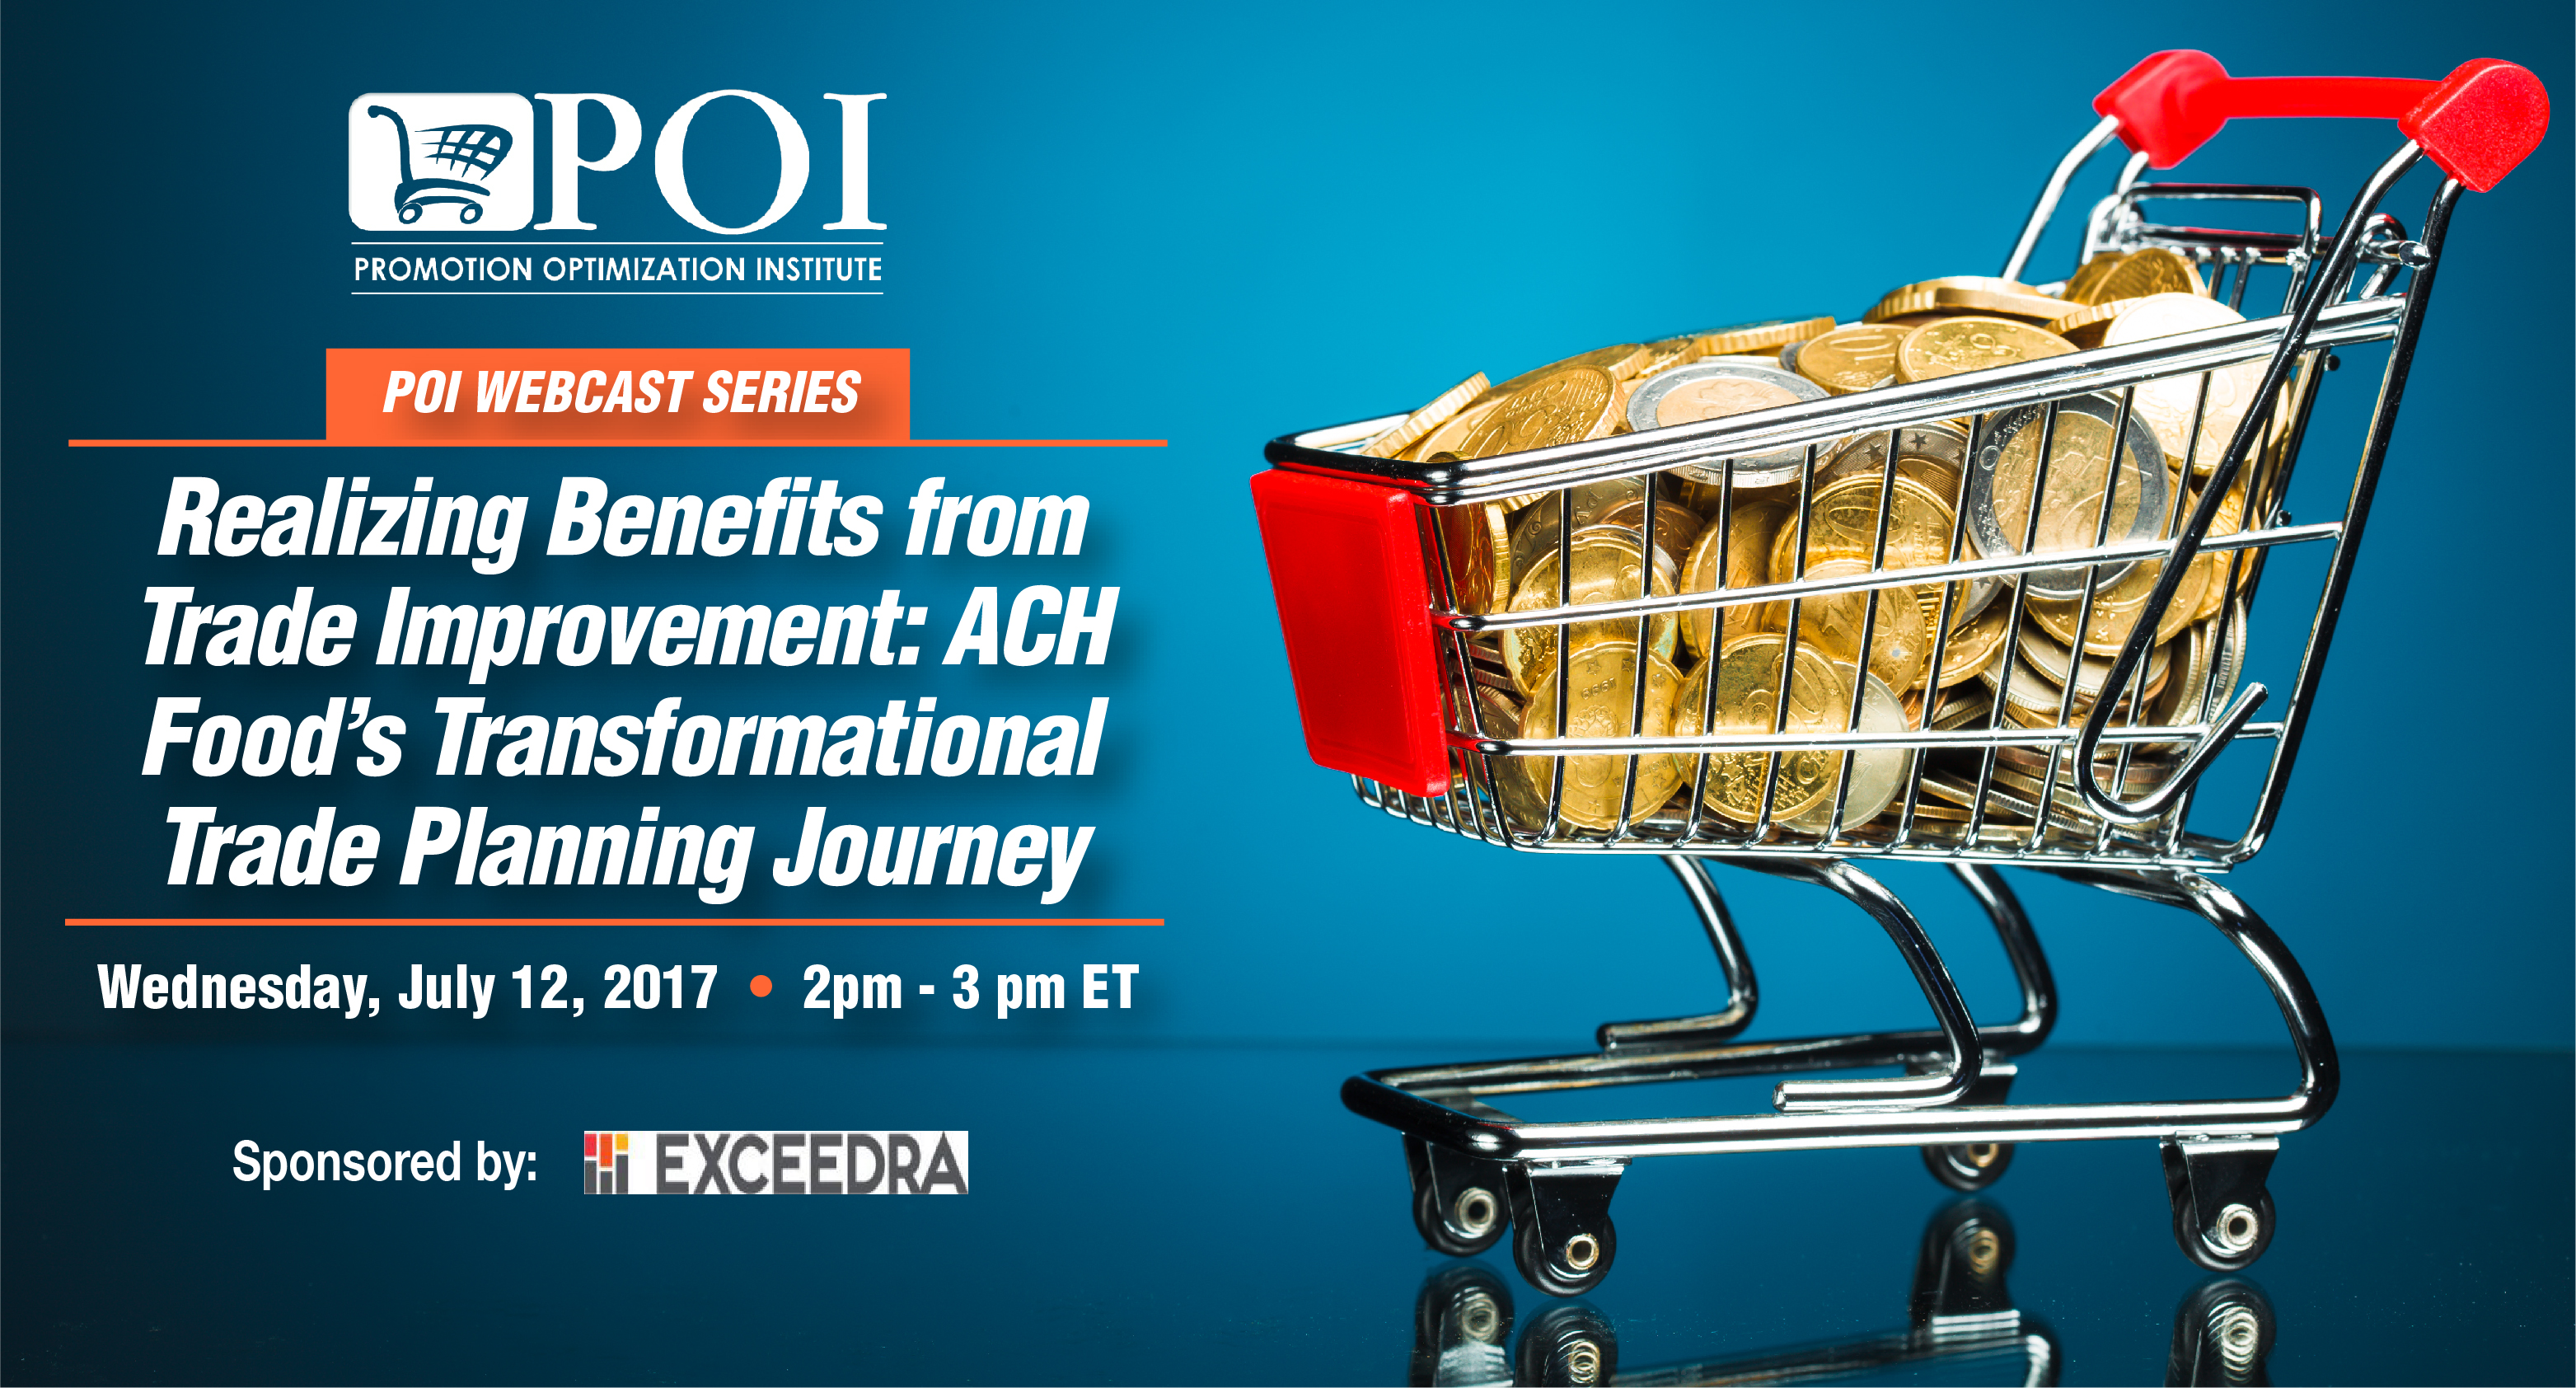 Realizing Benefits from Trade Improvement: ACH Food's Transformational Trade Planning Journey